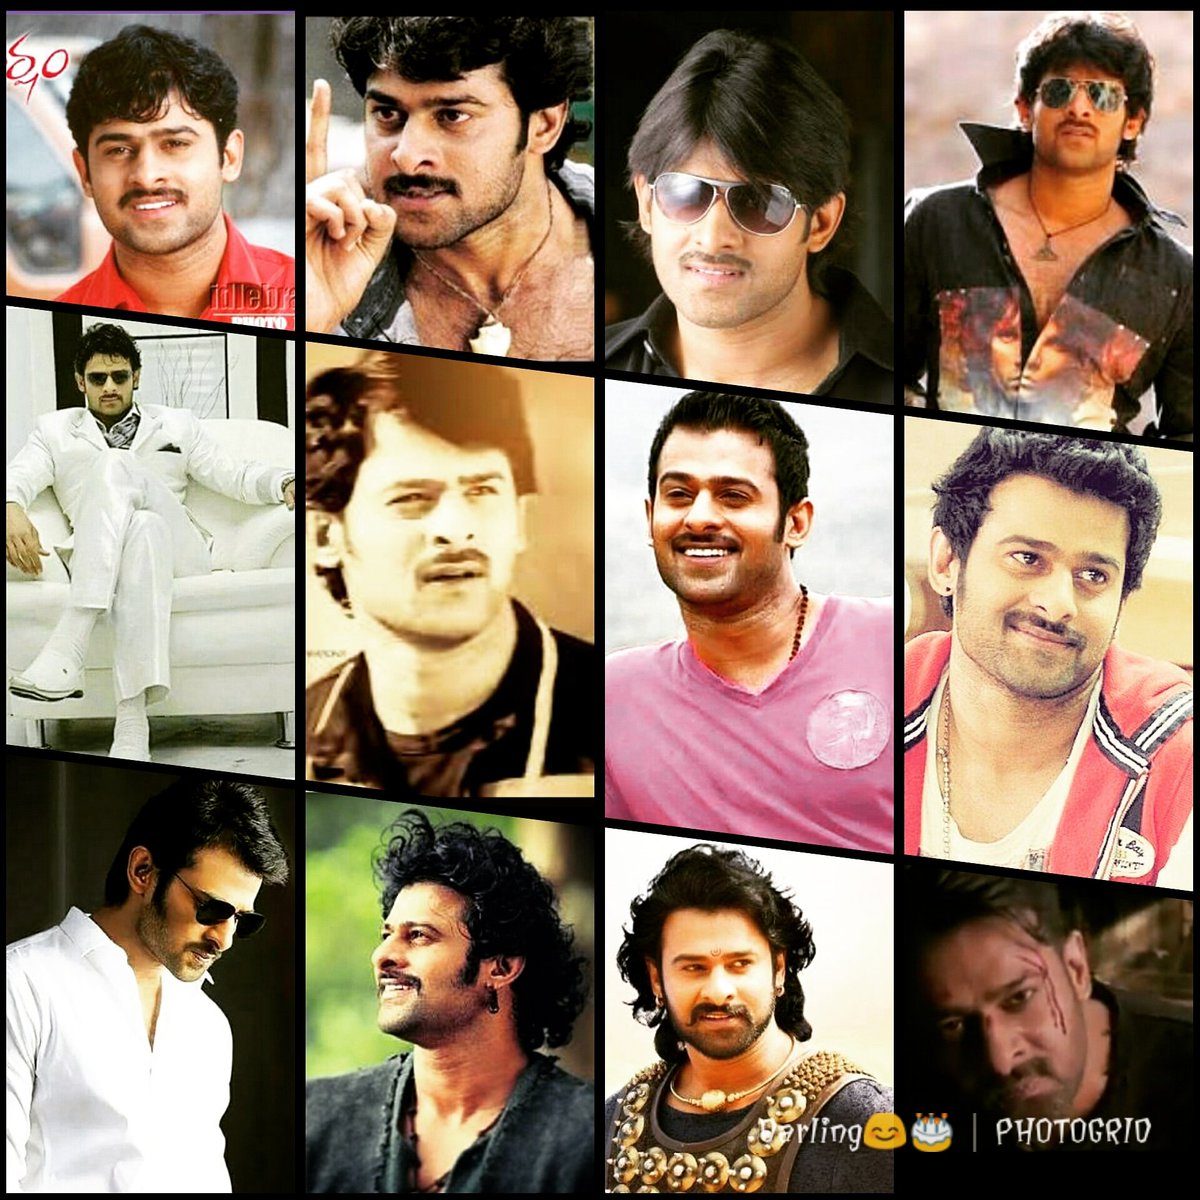 A very happy bday to the most genuine,down to earth,amazing and talented darling person.Stay blessed. #journey #HBDDarlingPrabhas @Thyview<br>http://pic.twitter.com/Sn7HaBRx6S